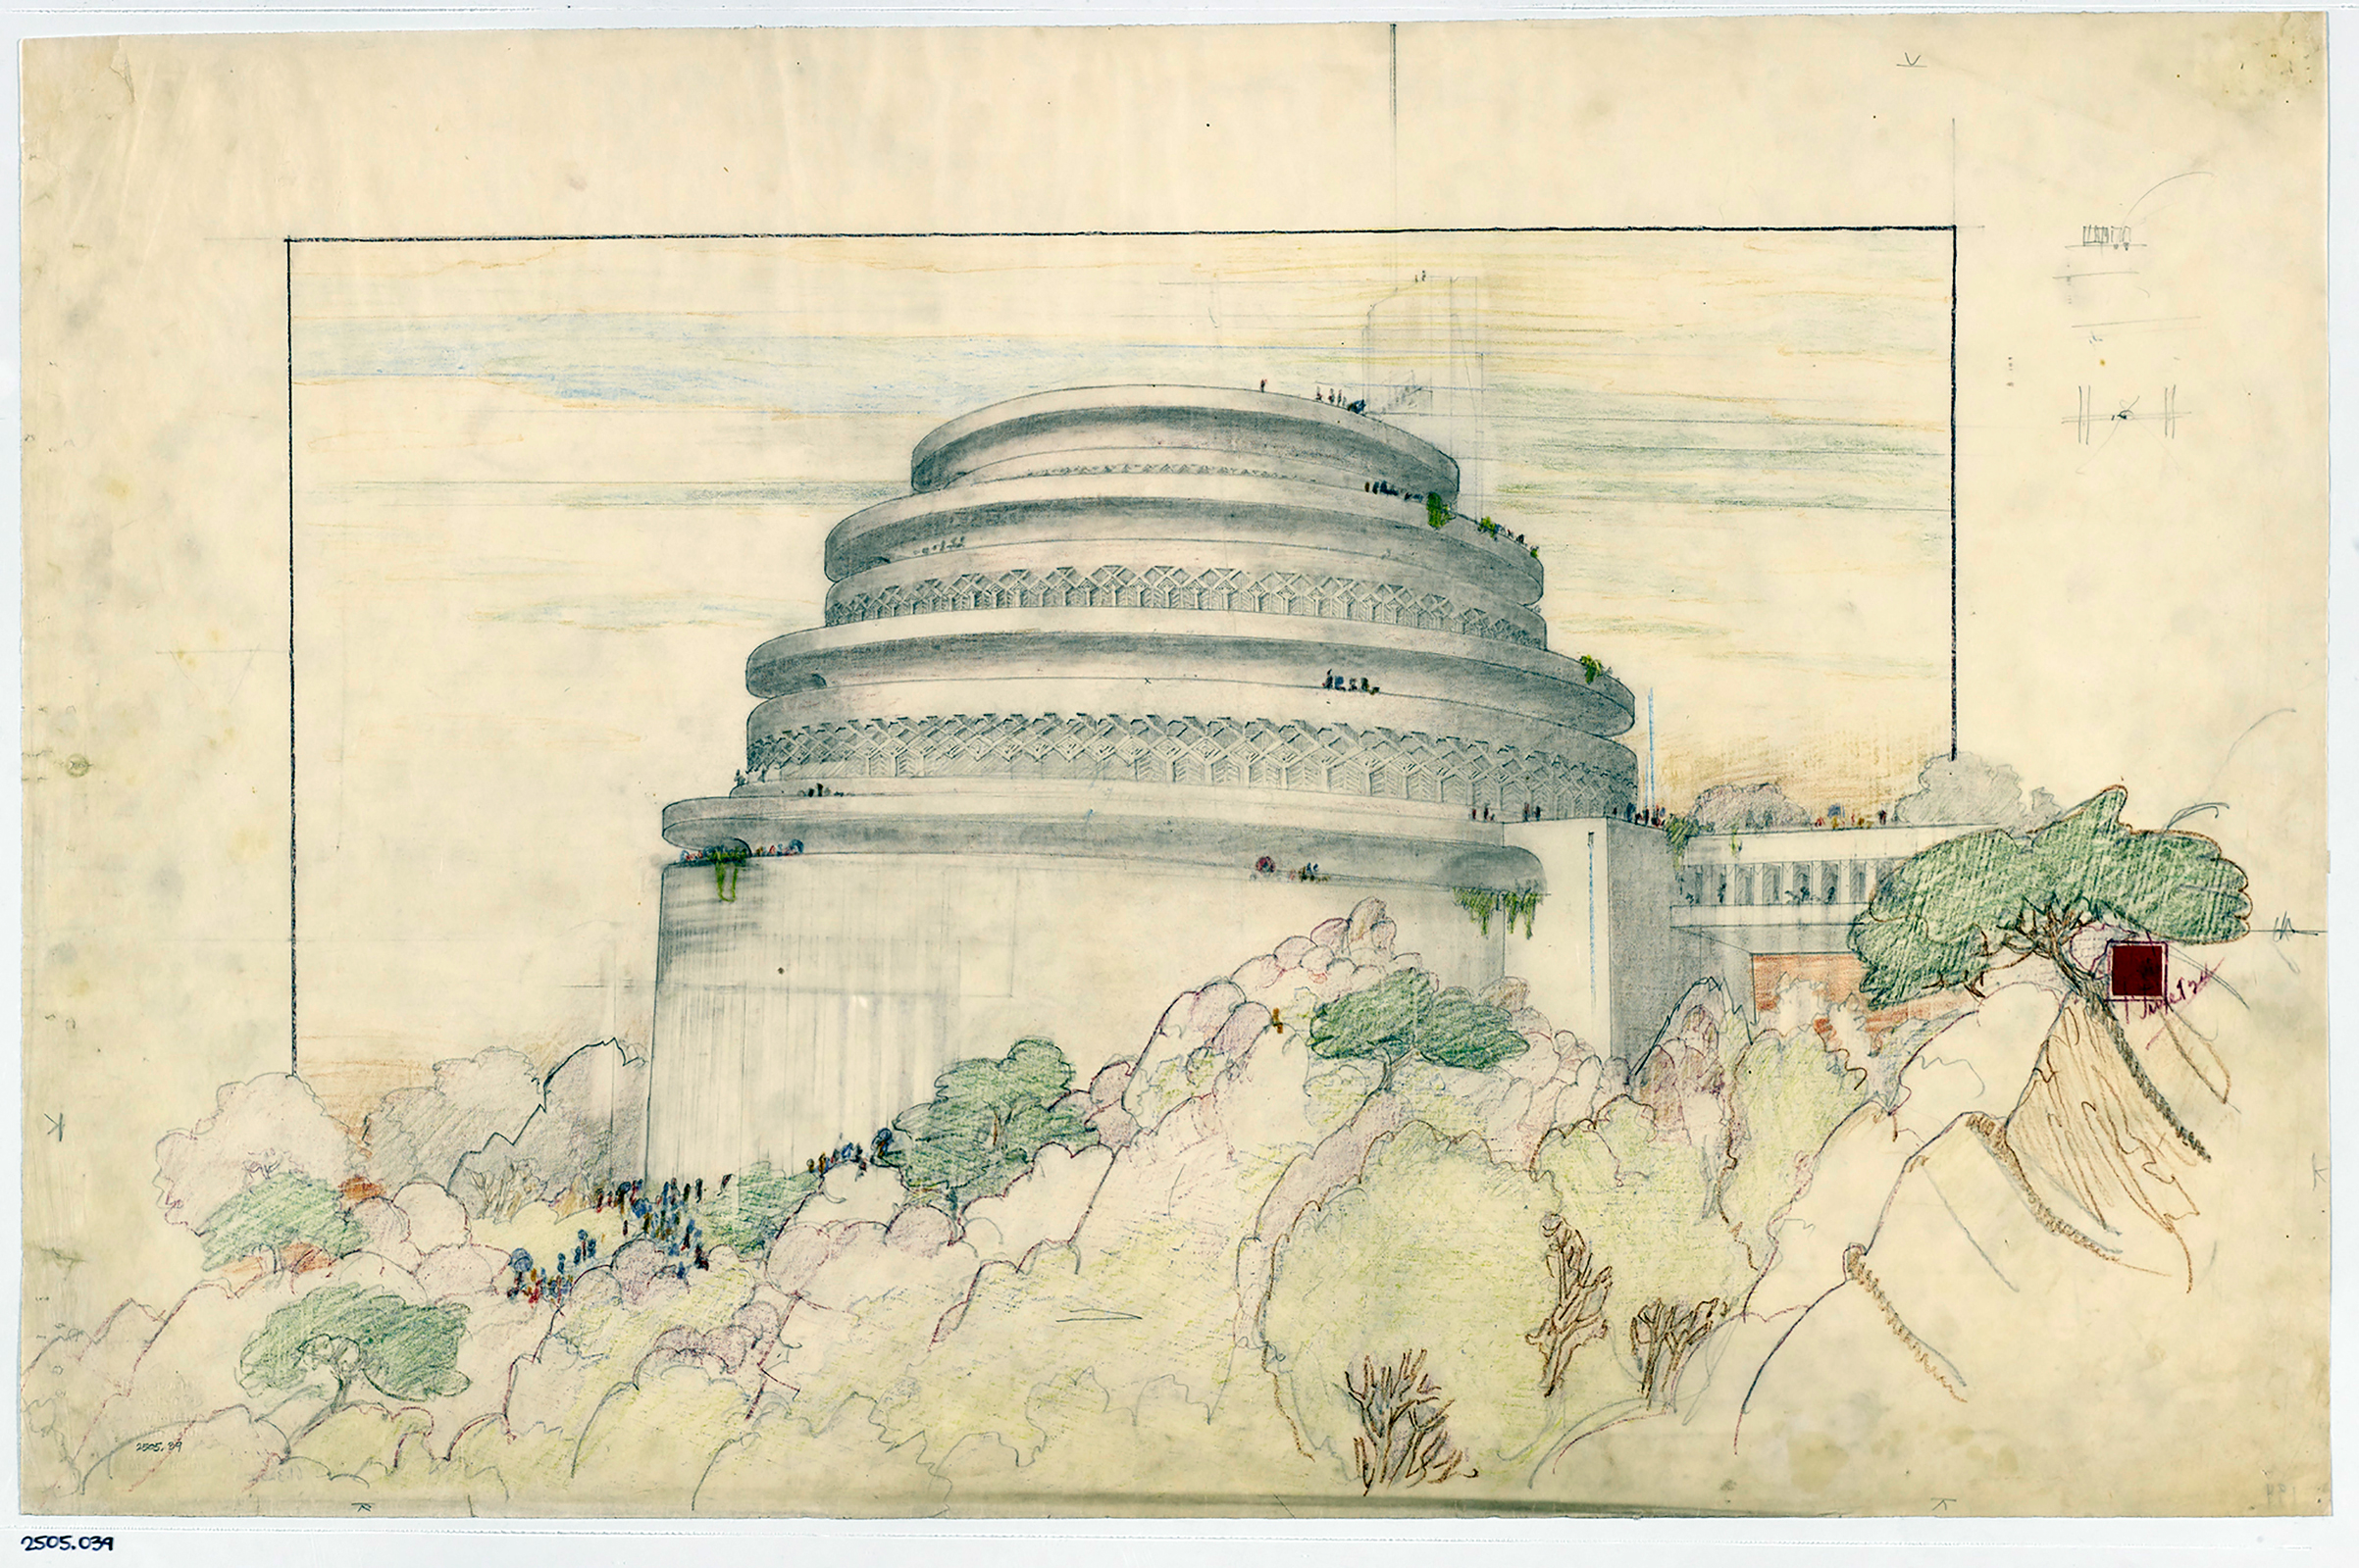 Frank Lloyd Wright (American, 1867–1959). Gordon Strong Automobile Objective and Planetarium, Sugarloaf Mountain, Maryland. Project, 1924–25. Perspective. Pencil and colored pencil on tracing paper.